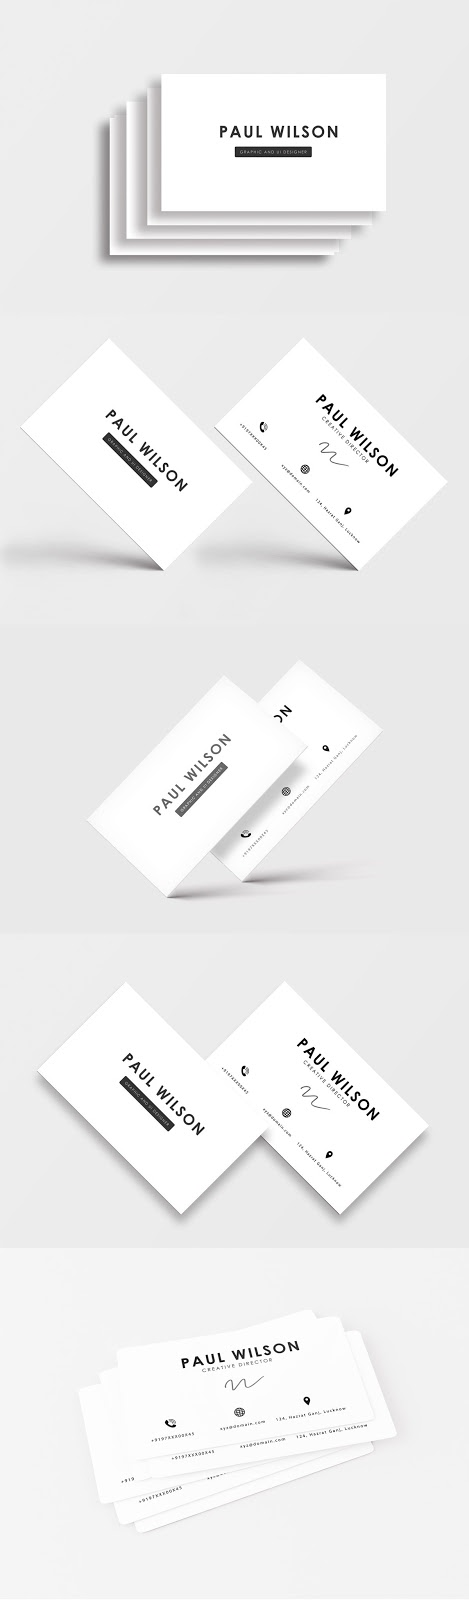 Free white clean business card mockup grafobia this mockup is fully layered and ready to print available in psd format download it for free on grafobia and use it for you next project or visual reheart Image collections